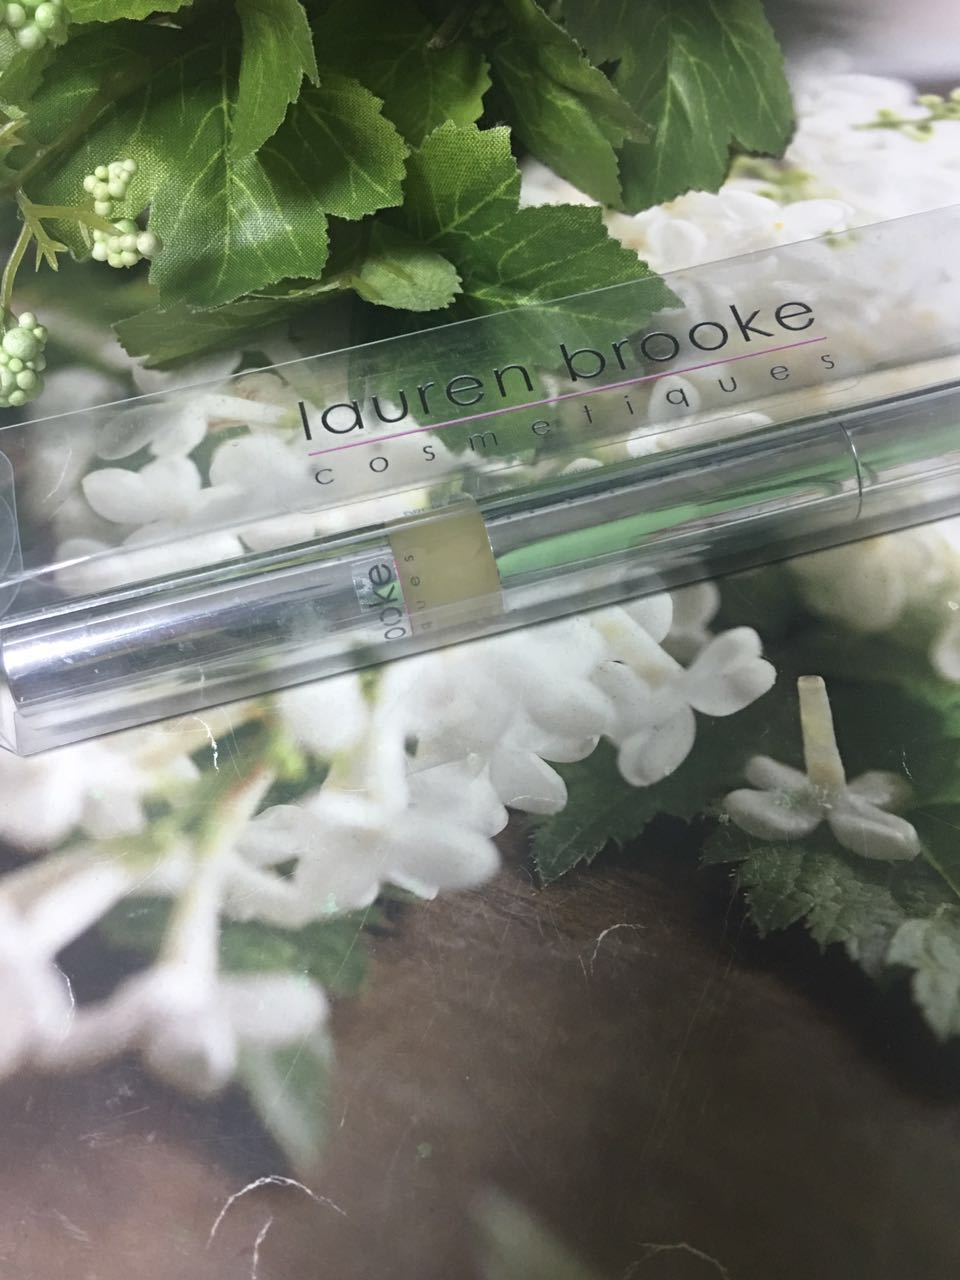 天然抗敏草本有機增長捷毛液(營養)| Organic herbal lash strengthening nourishing mascara